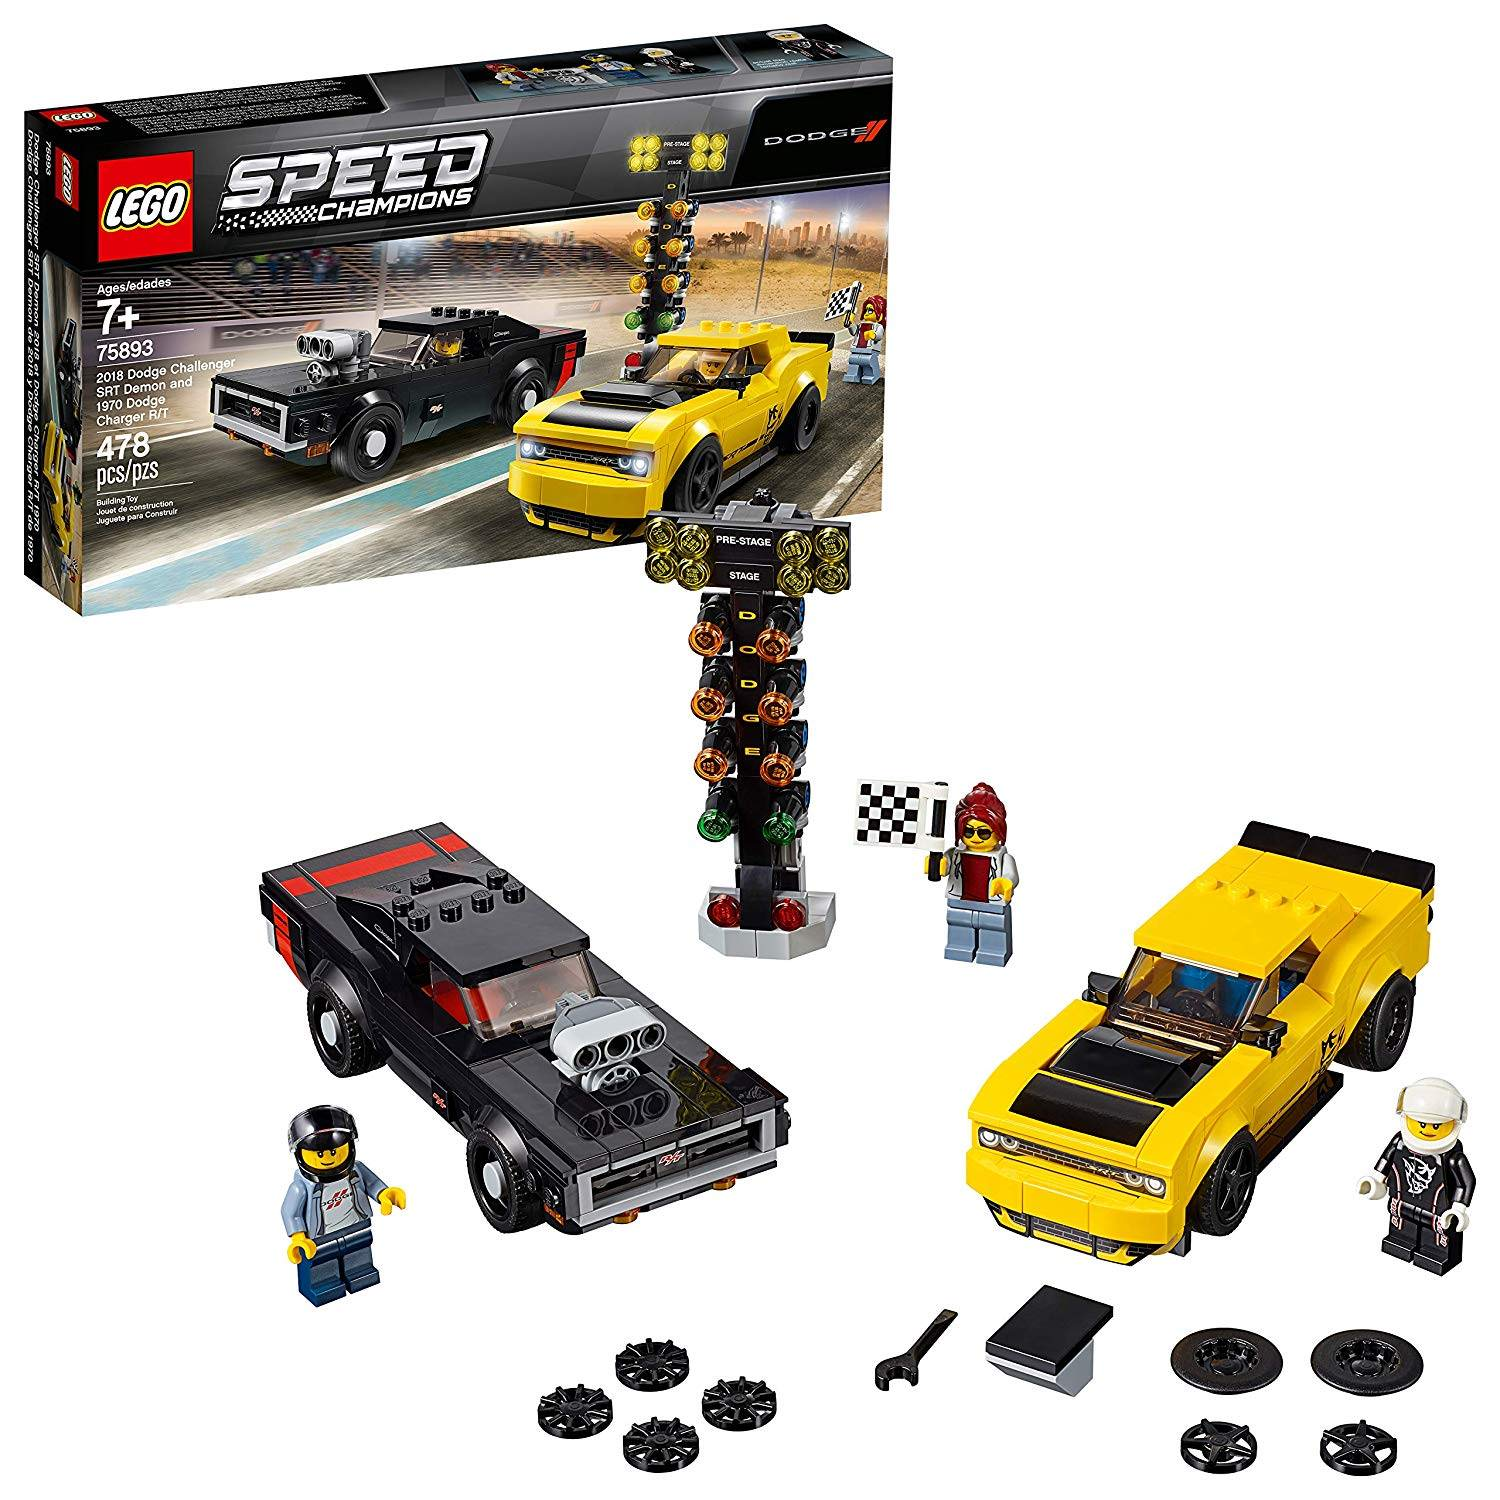 LEGO 75893: 2018 Dodge Challenger SRT Demon and 1970 Dodge Charger R/T